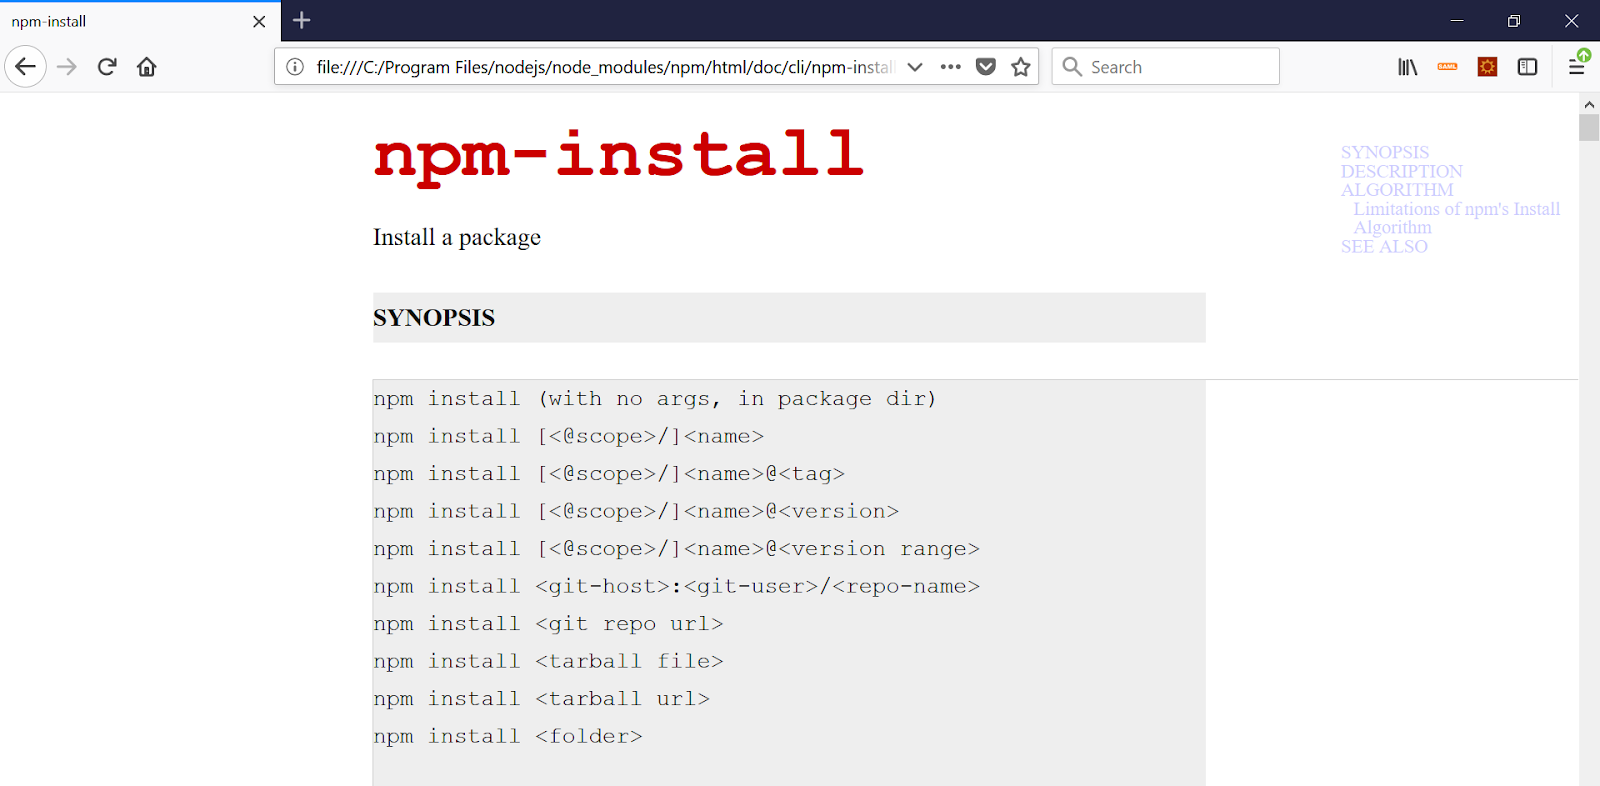 Programming for beginners: Exploring node package manager (npm)